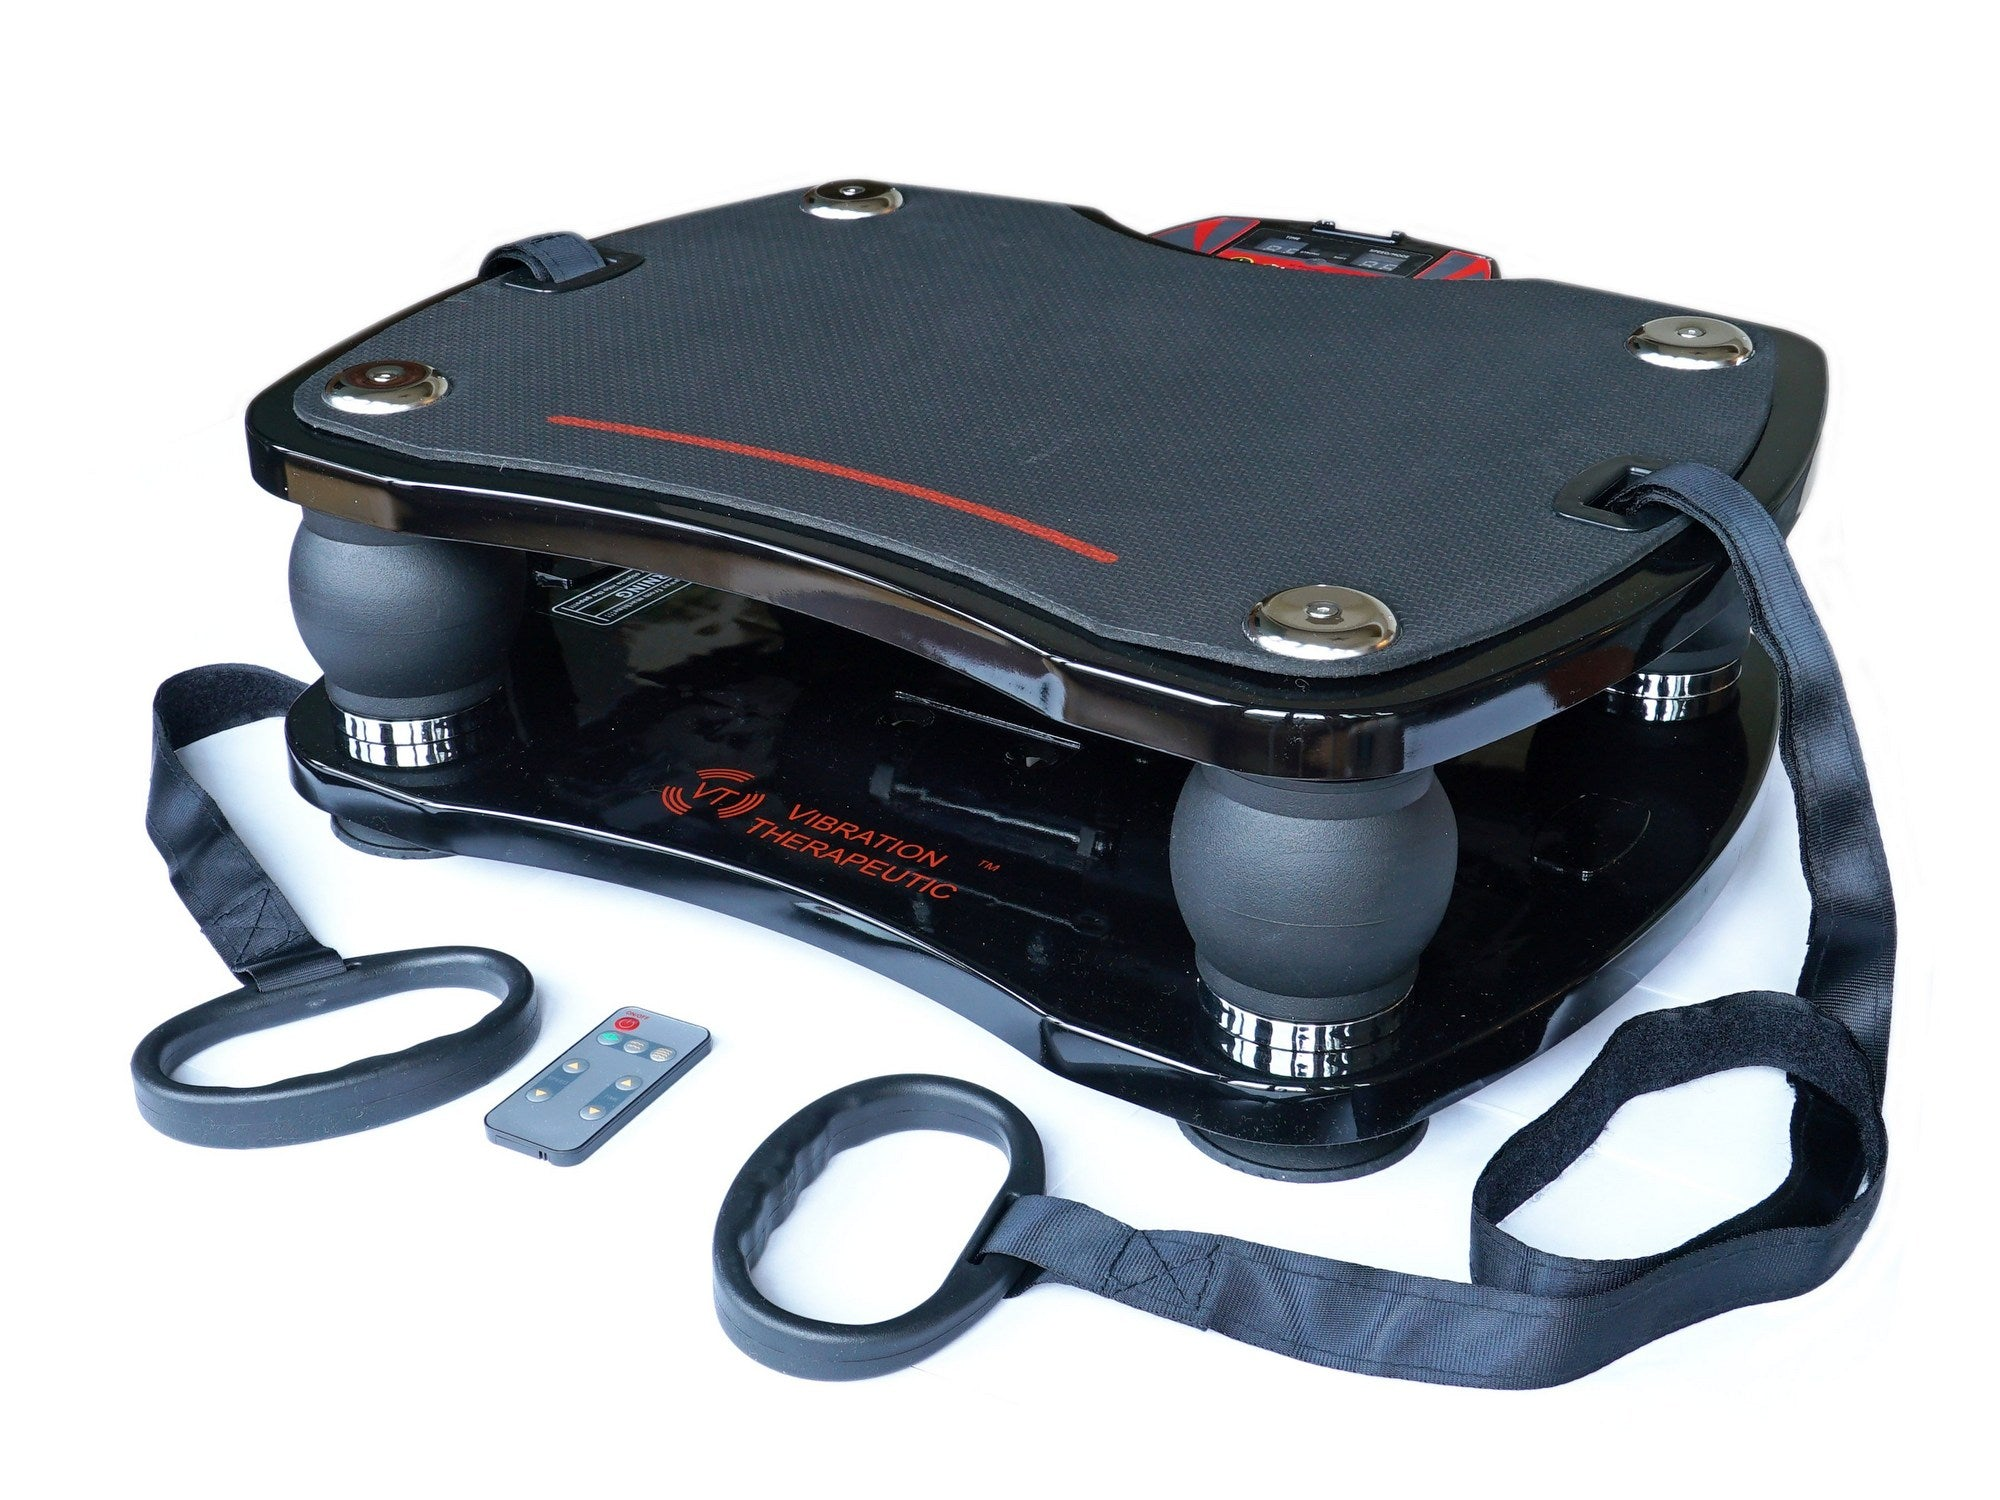 VT003F Vibration Plate User Review